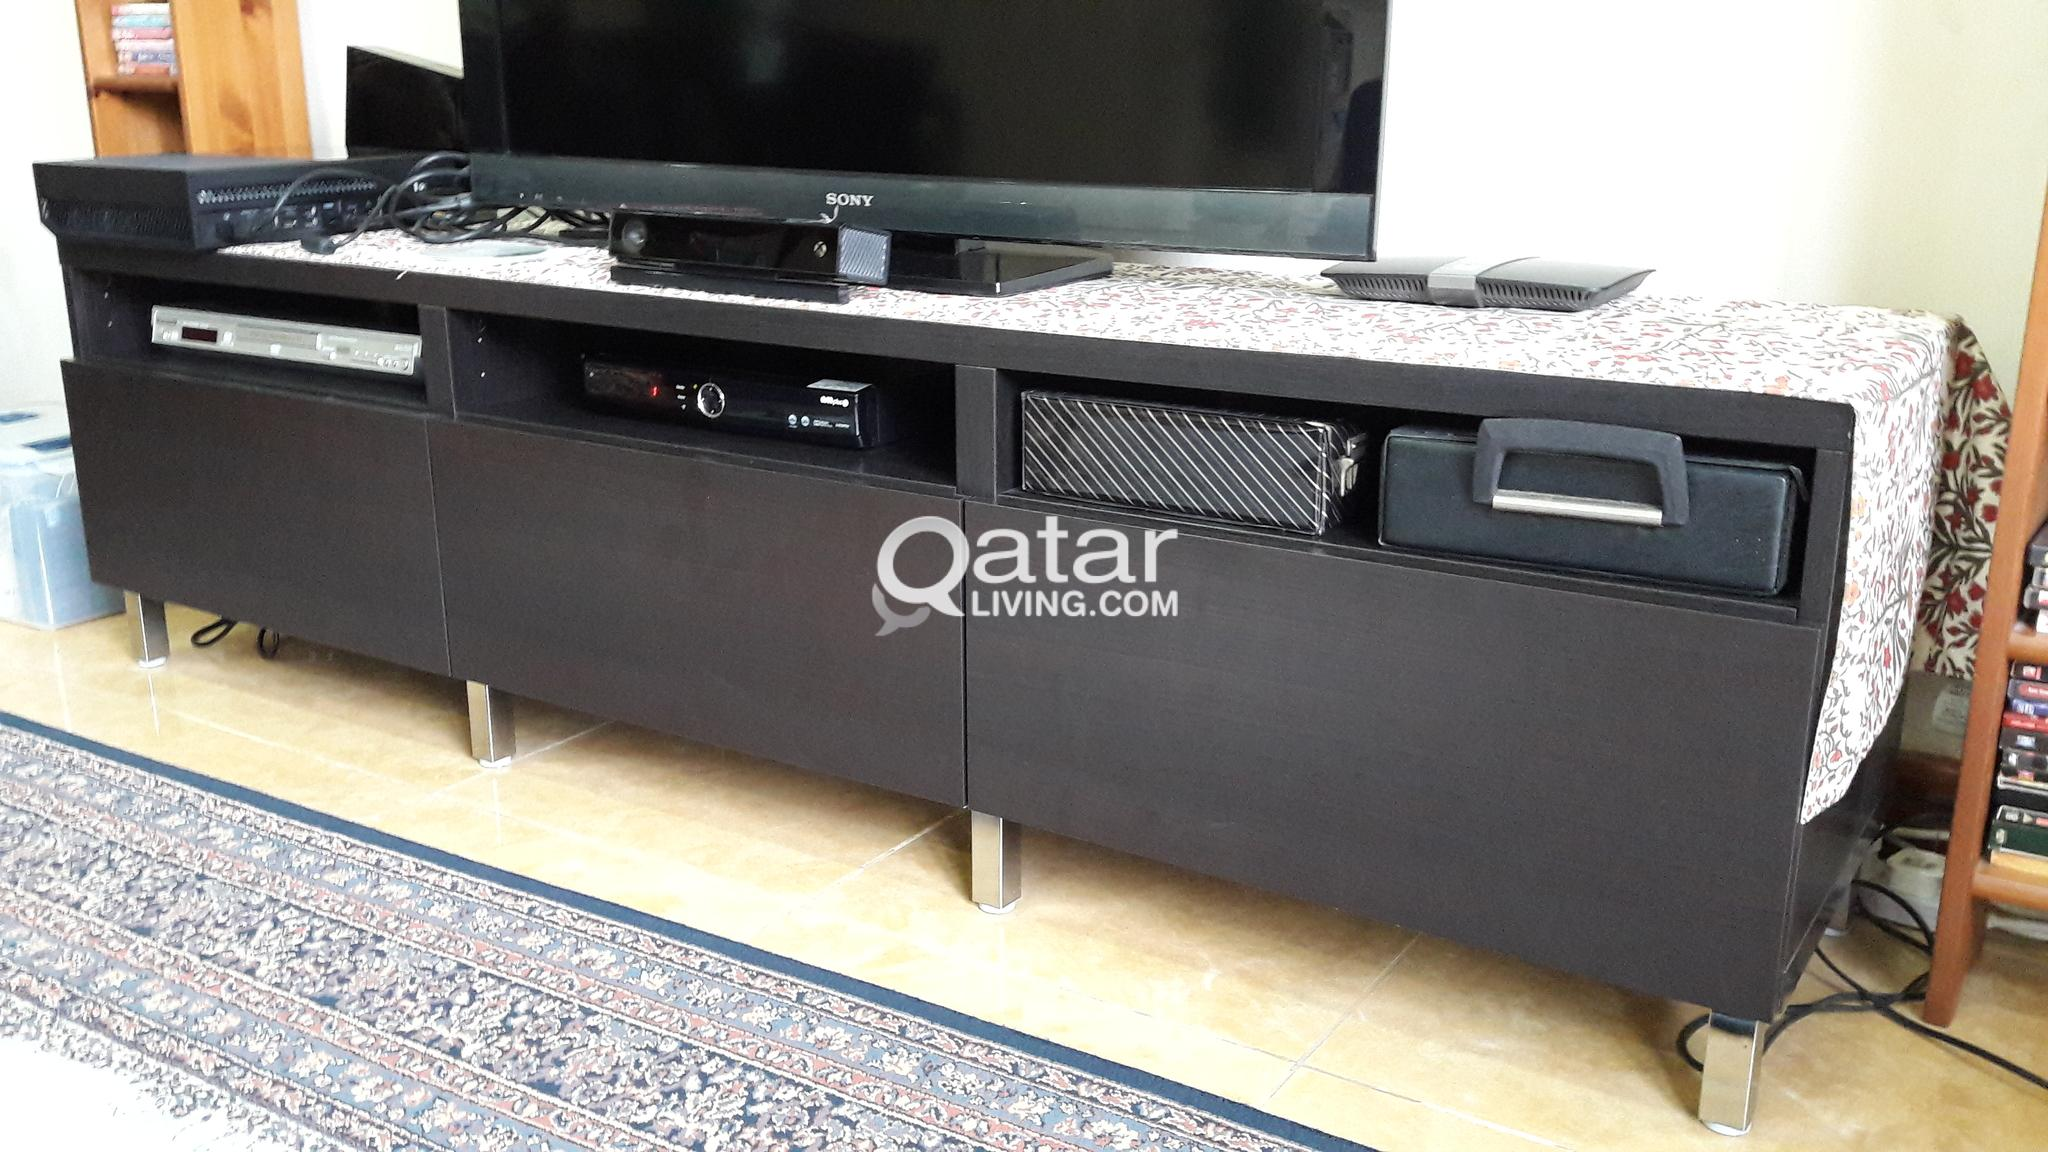 Home Clearance Tv Cabinet Ikea Final Price Reduction Home Clearance Qatar